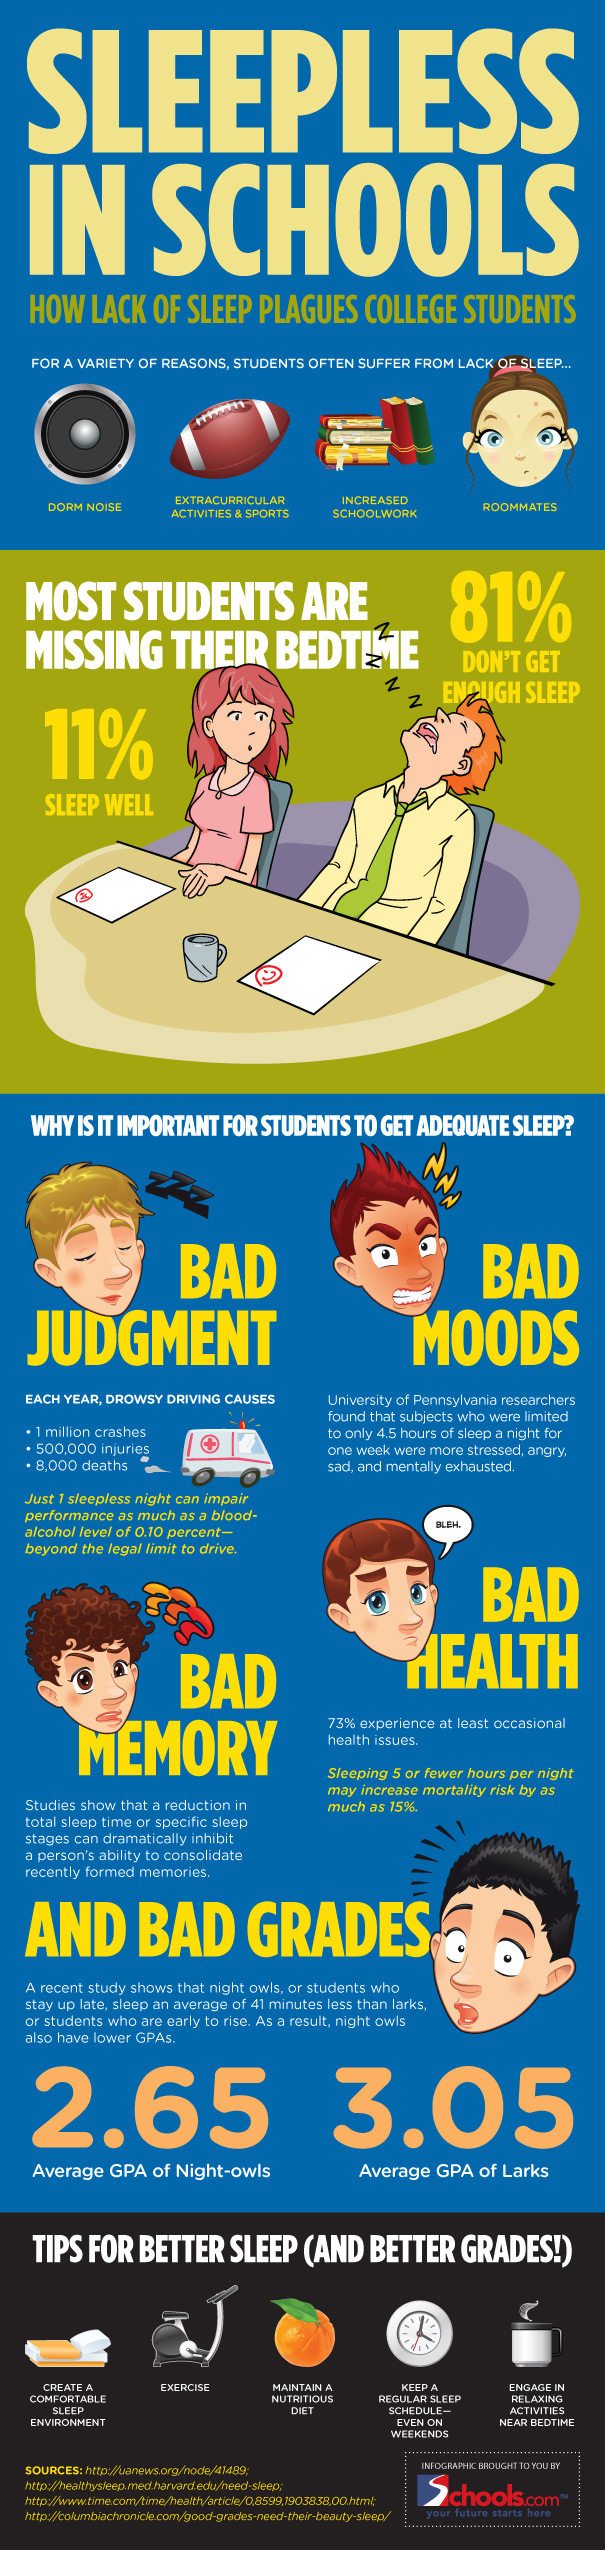 Why College Students Should Get Enough Sleep